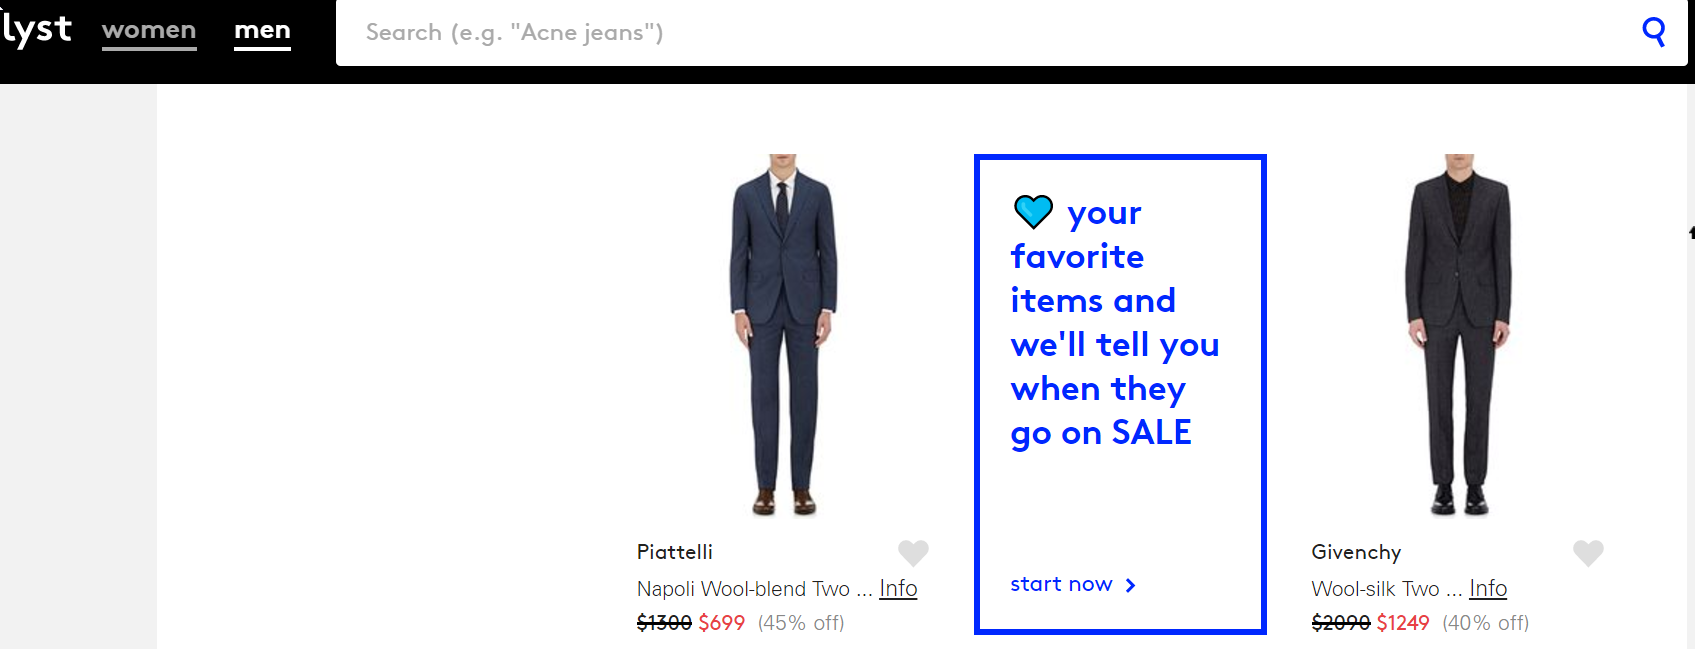 Tagging specific products on a fashion website